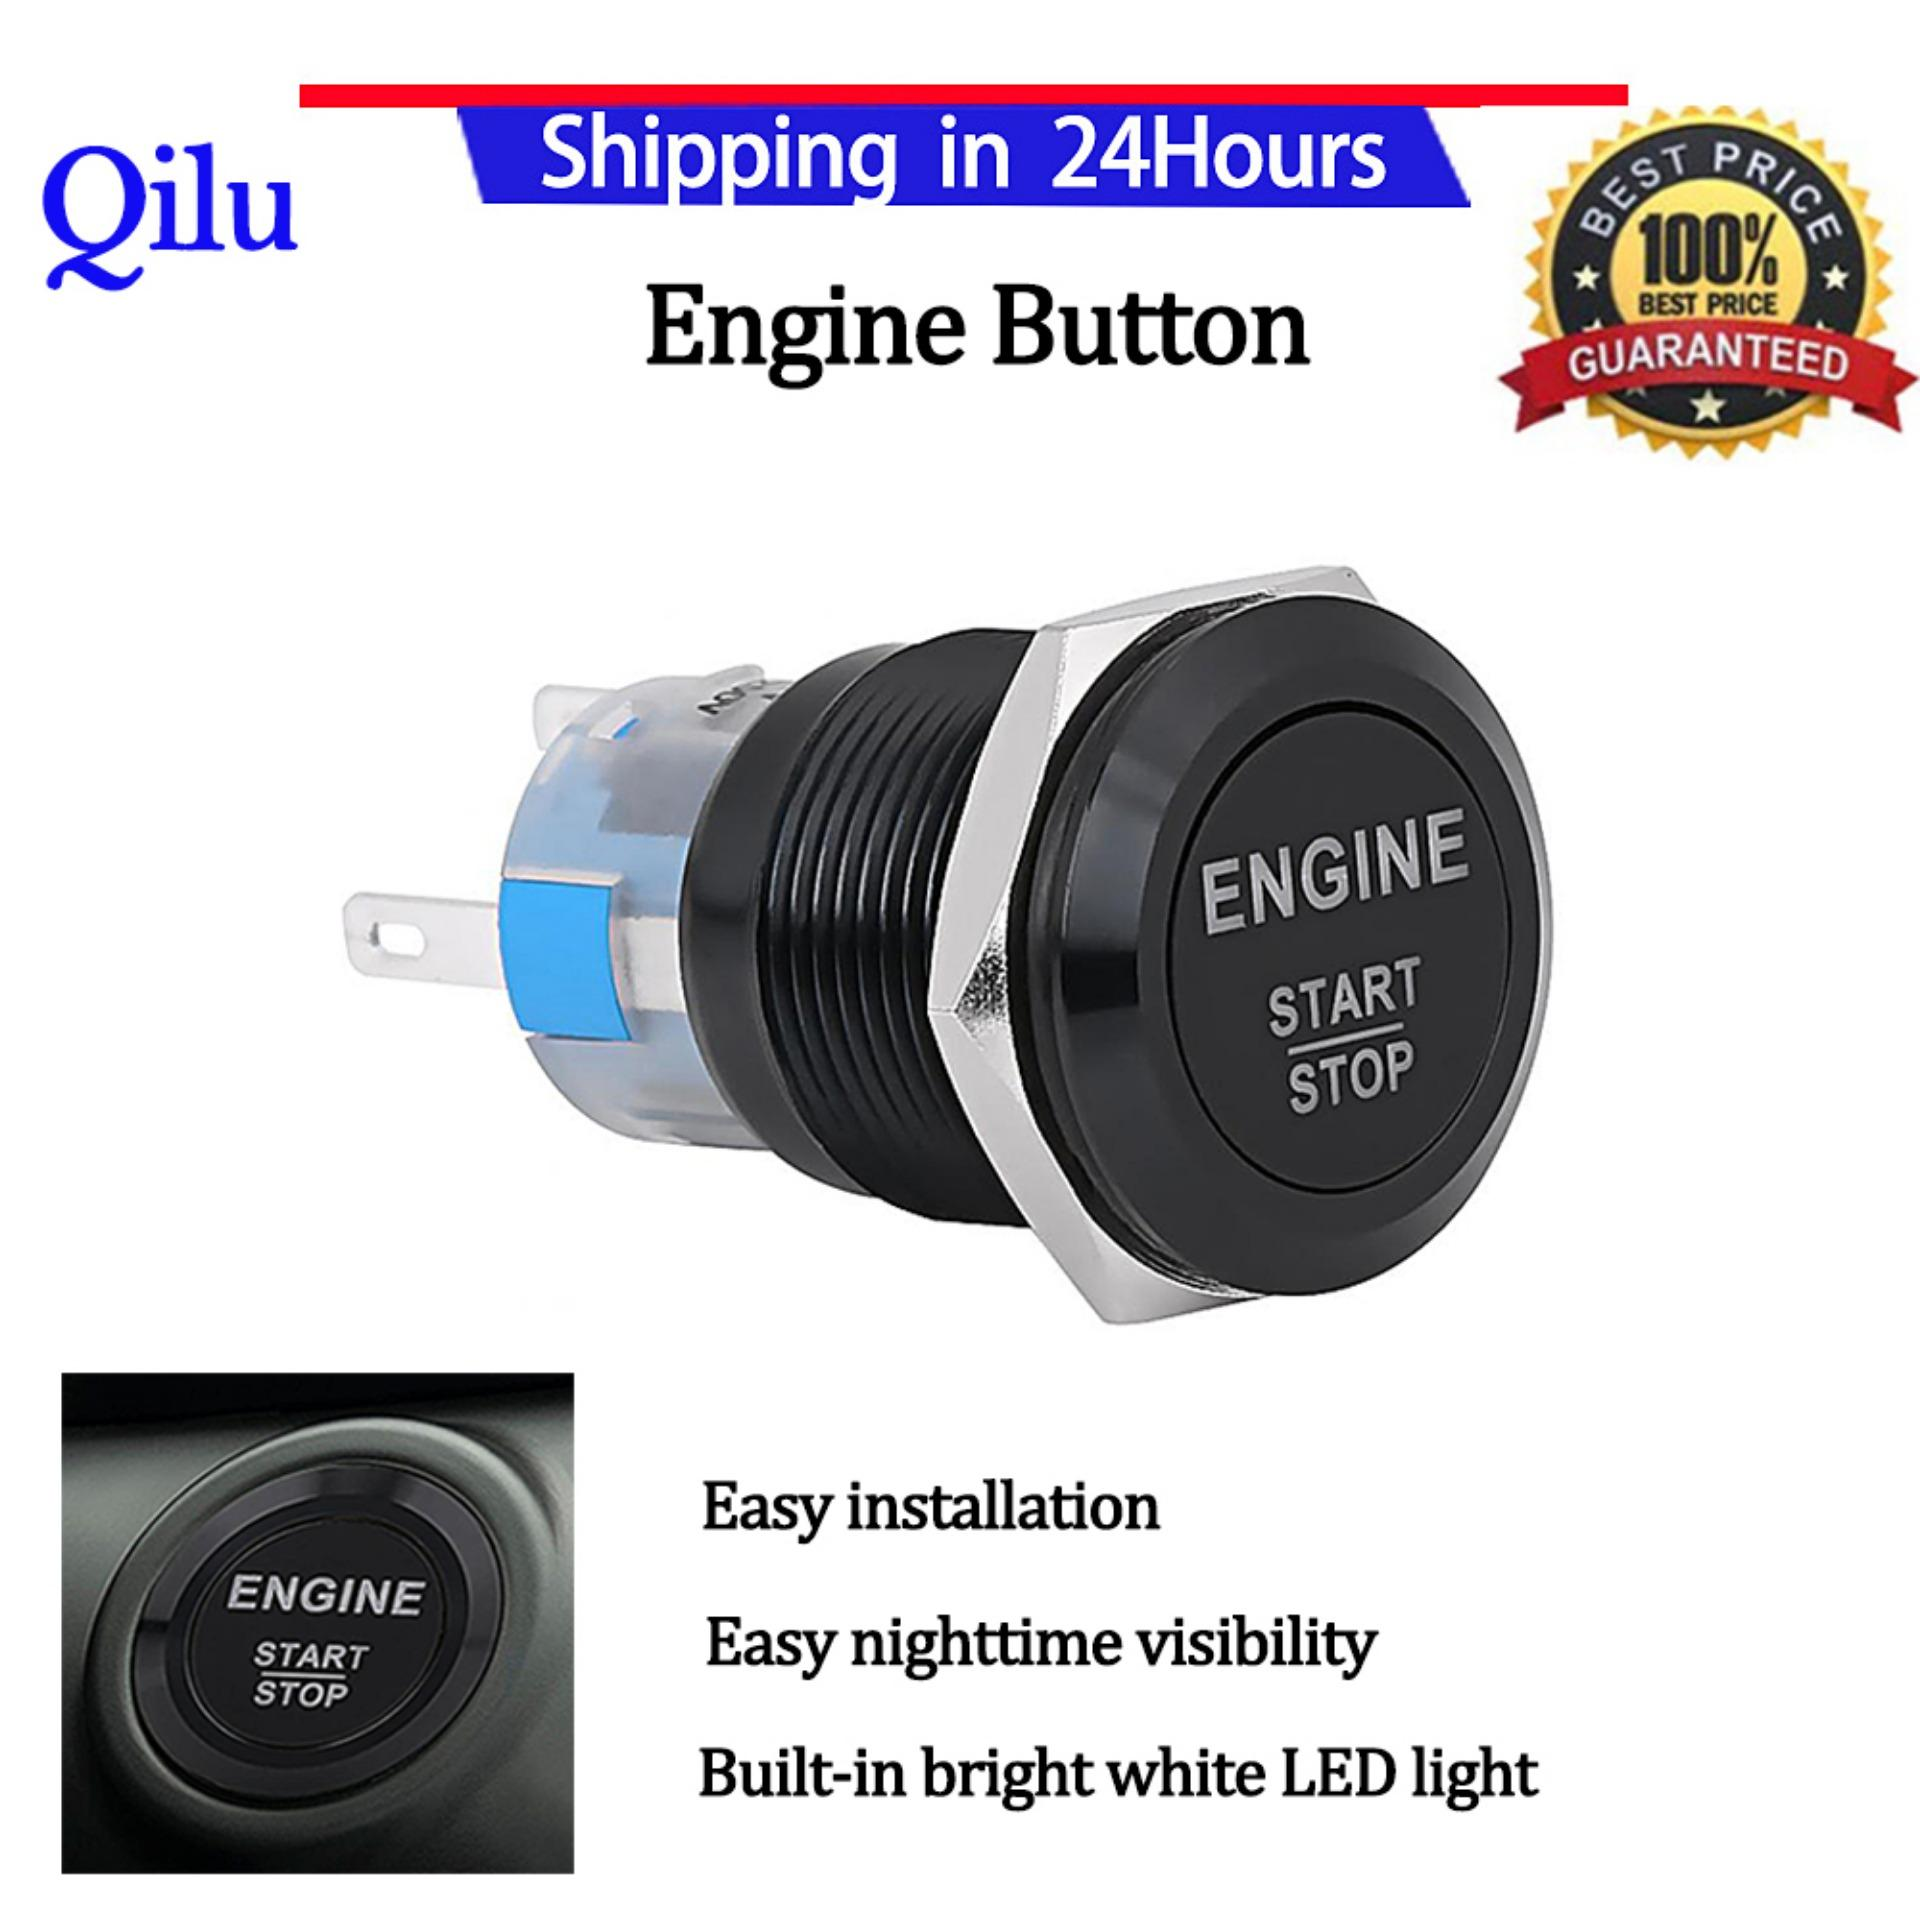 Alarm System For Sale Car Accessories Online Brands 1990 Toyota Camry Starter Relay Engine Start Switch 12v White Led Stop Push Button Black Zinc